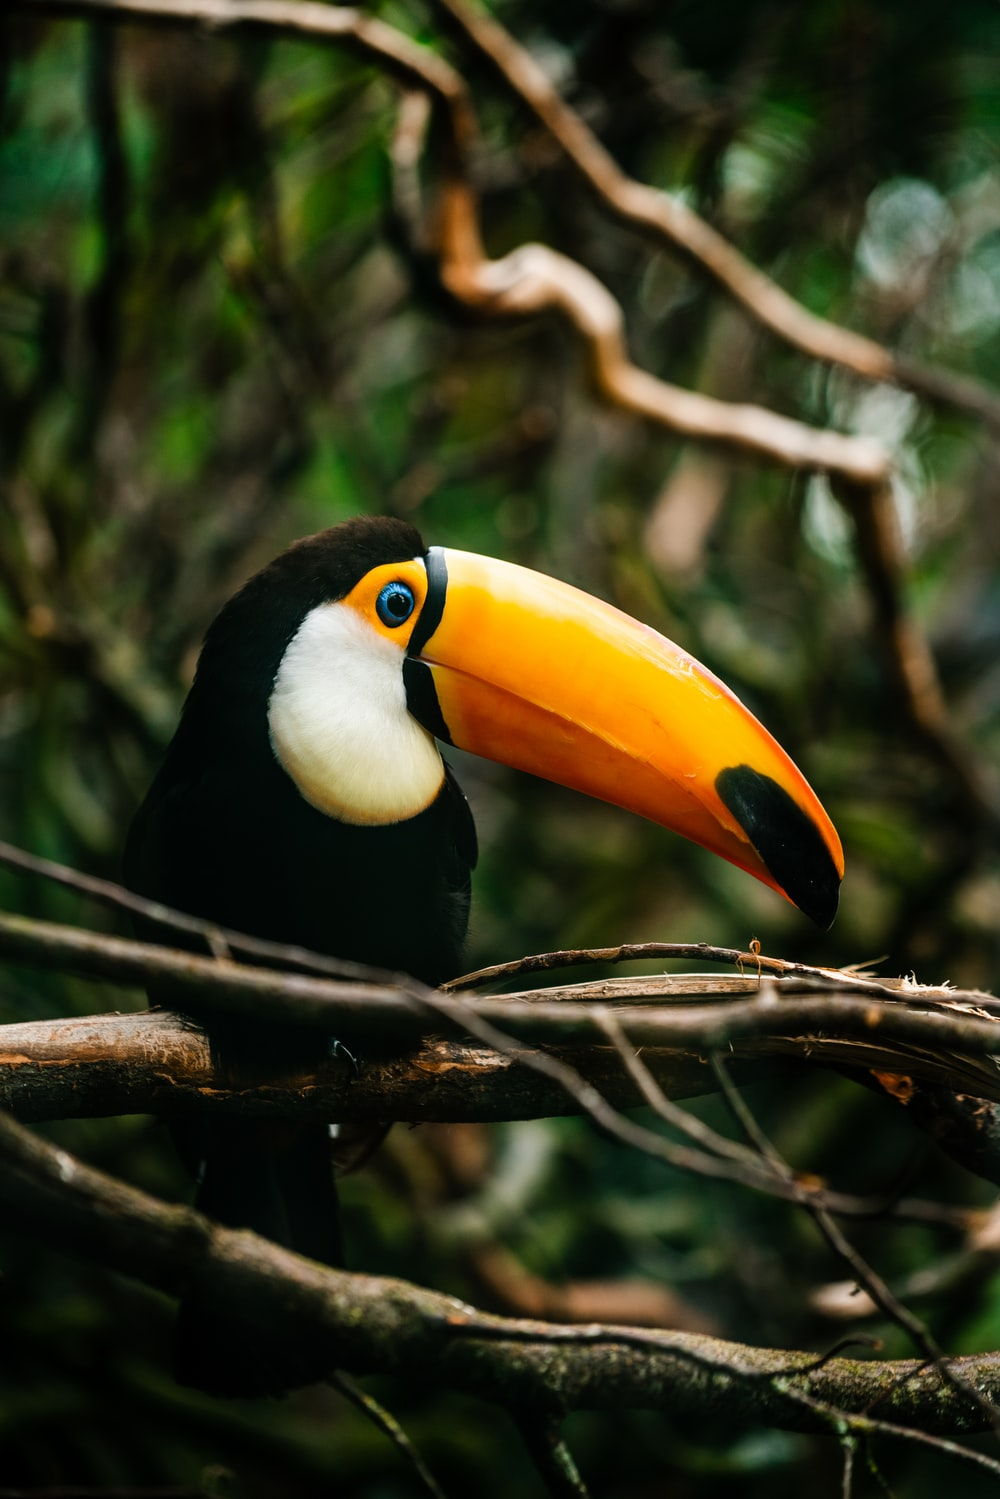 black yellow and red bird on brown tree branch